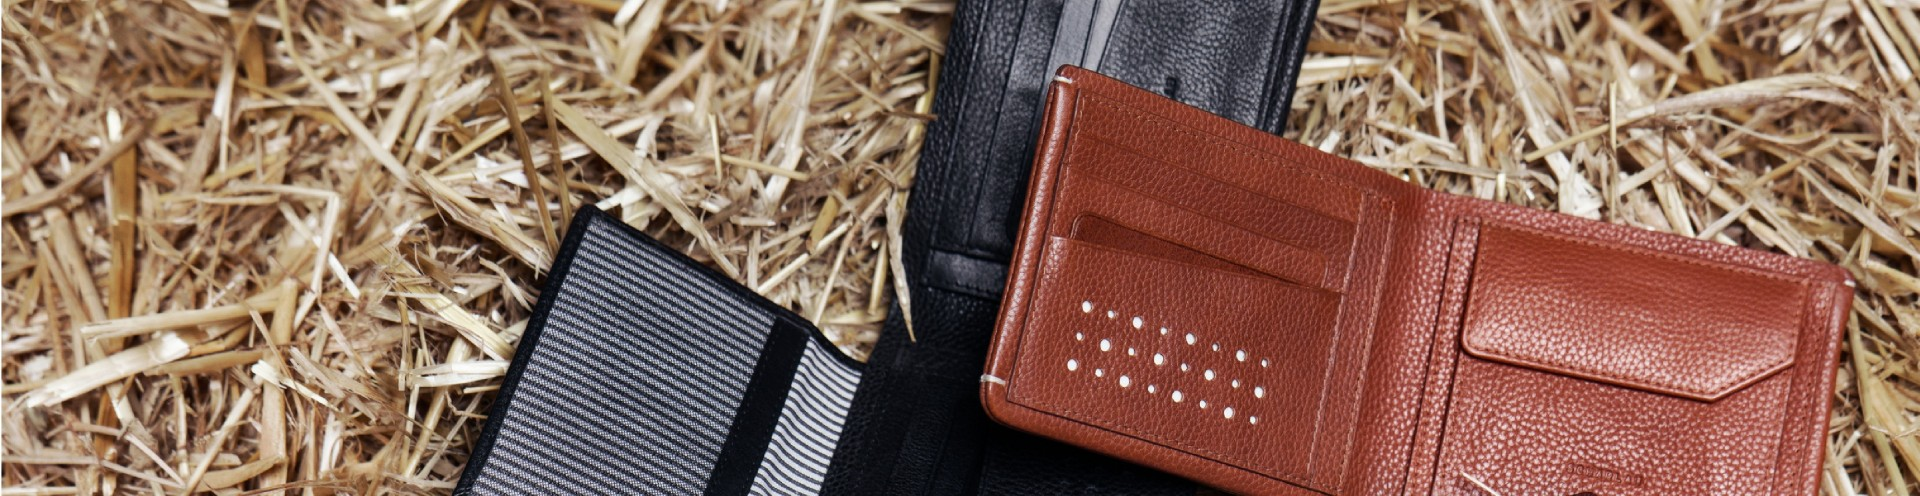 Elegant Wallets and Card Holders with RFID Protection